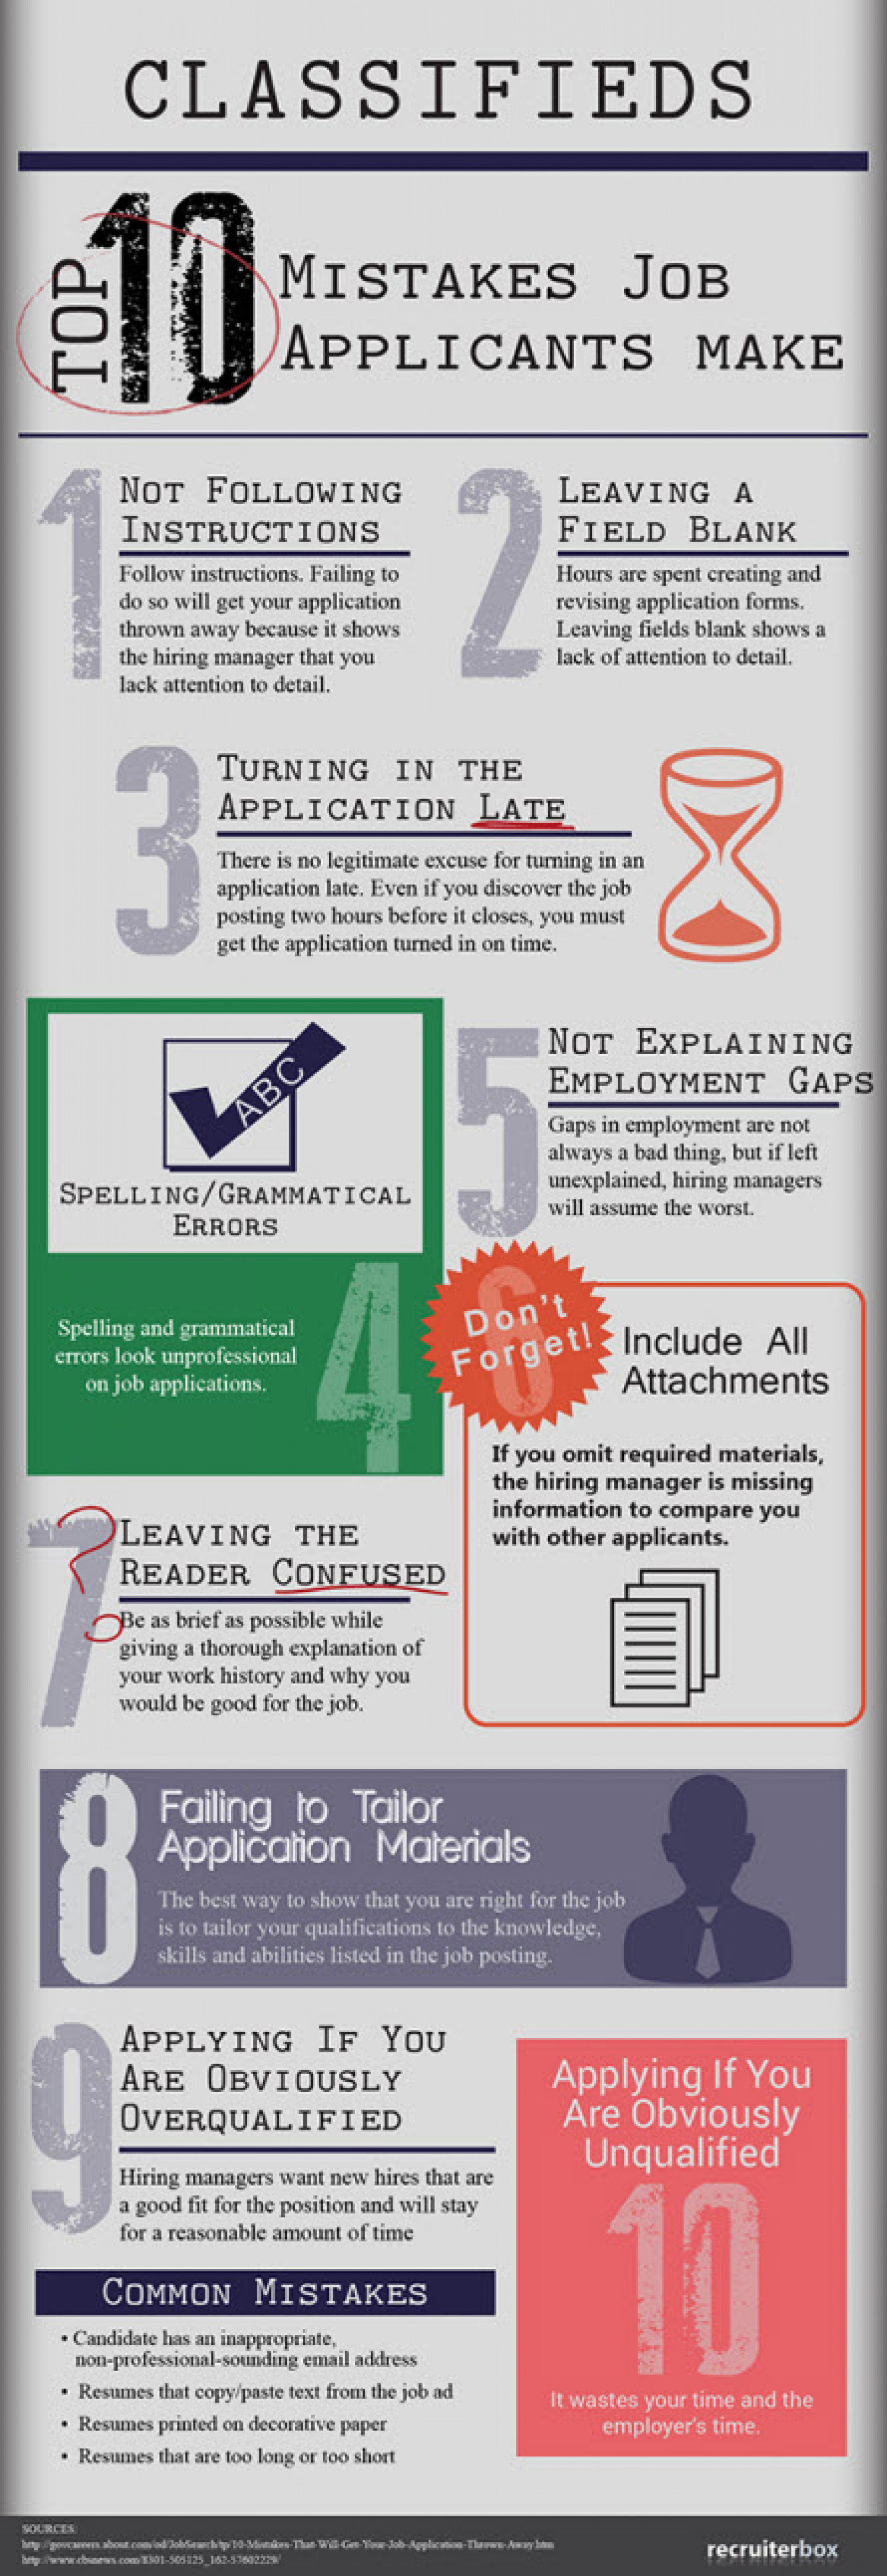 Top 10 Mistakes Job Applicants Make Infographic